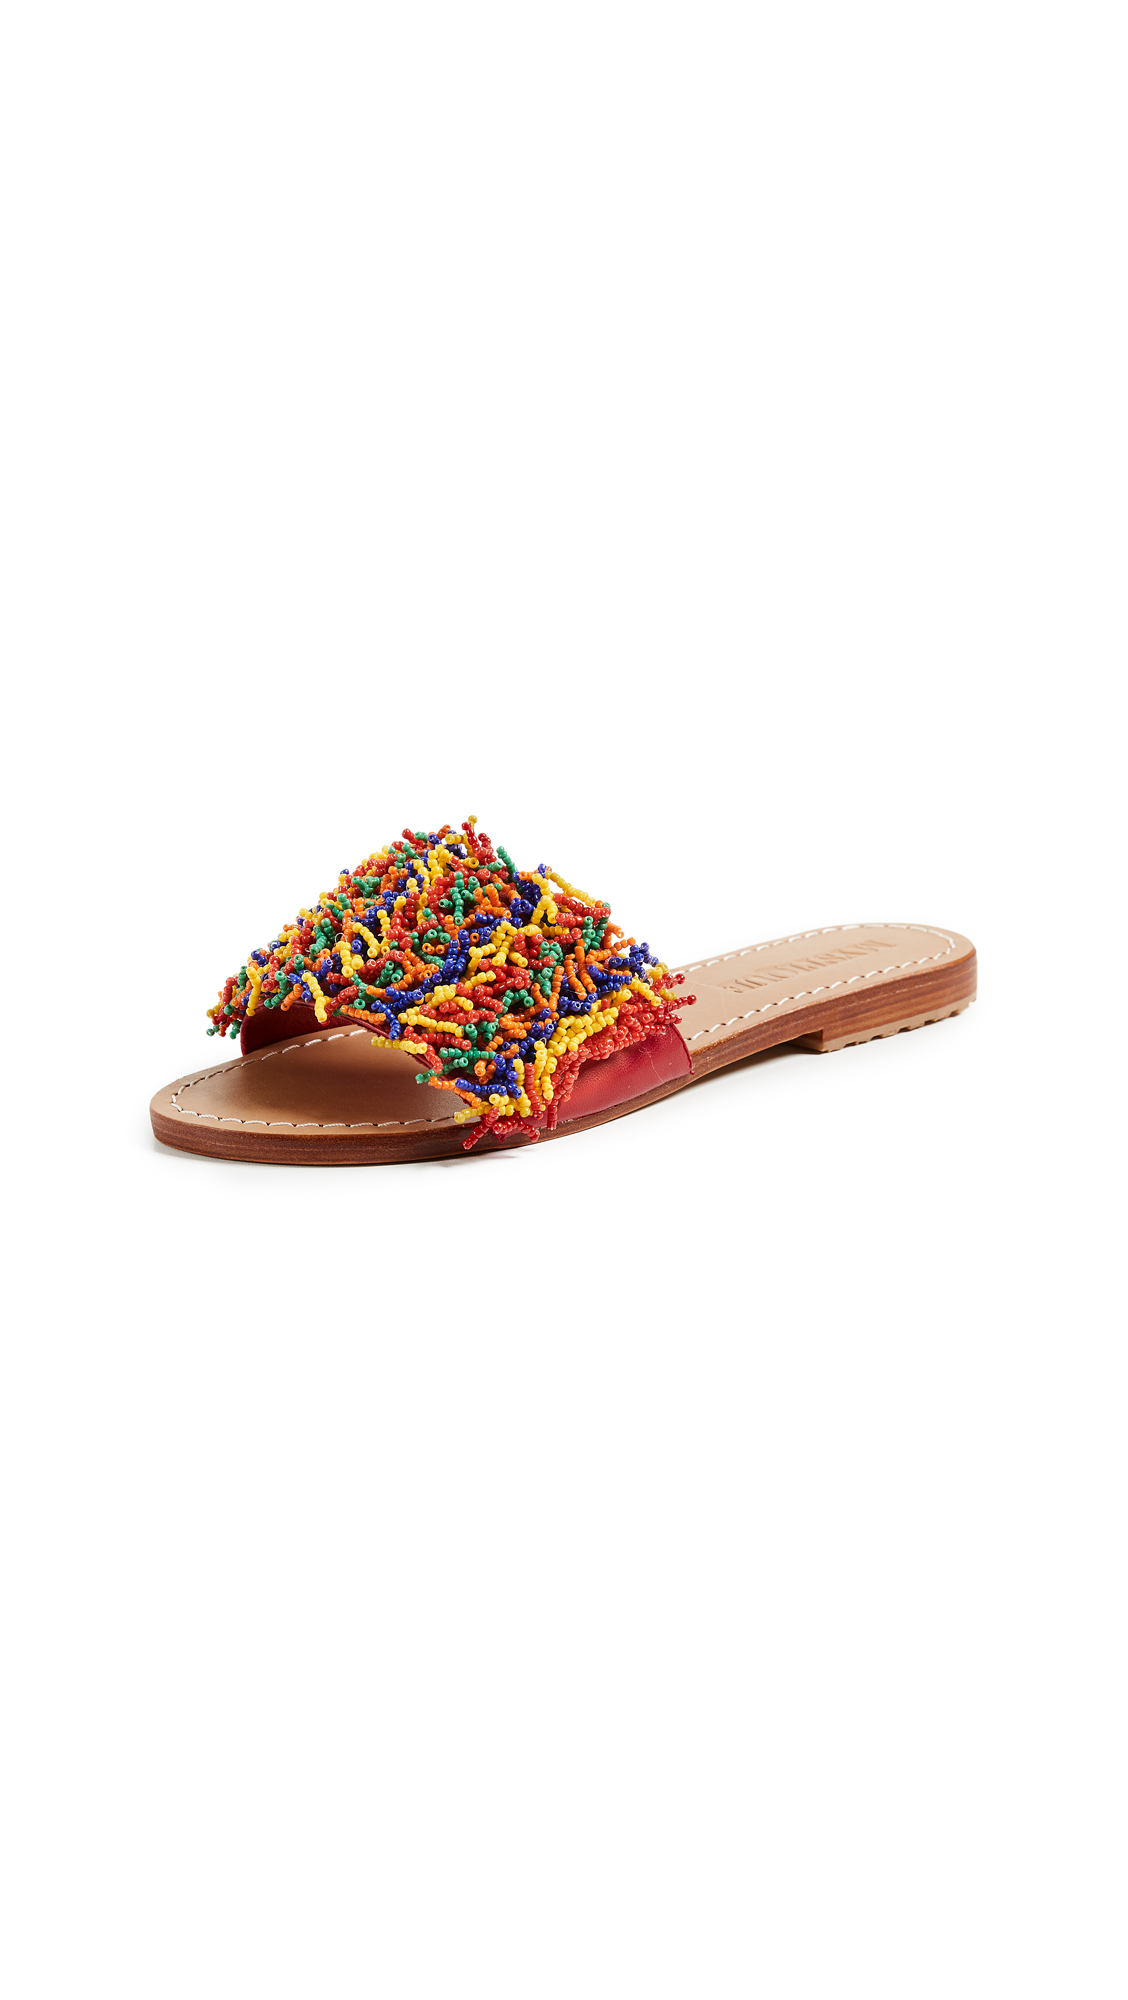 Mystique Coral Slides - Bright Multi